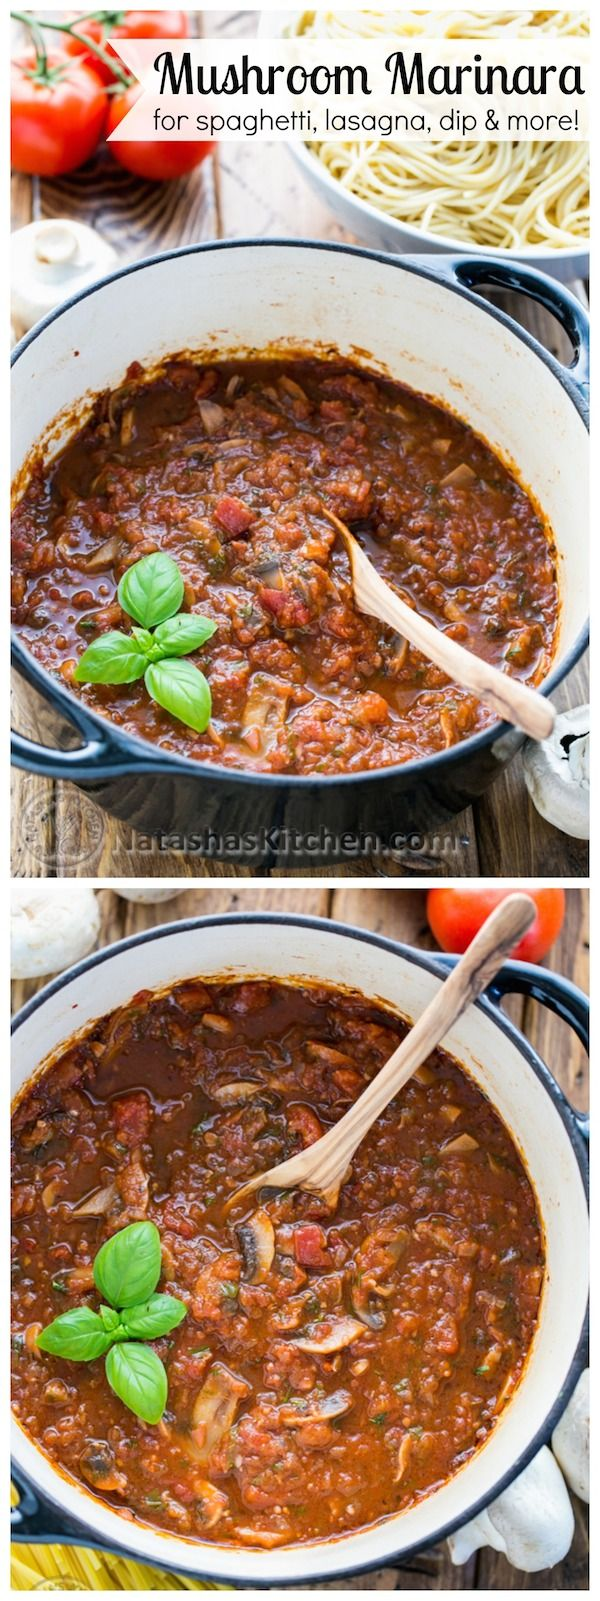 A mushroom marinara that's 100x better than any canned sauce! Perfect for spaghetti, lasagna, chicken parmesan  more! @natashaskitchen